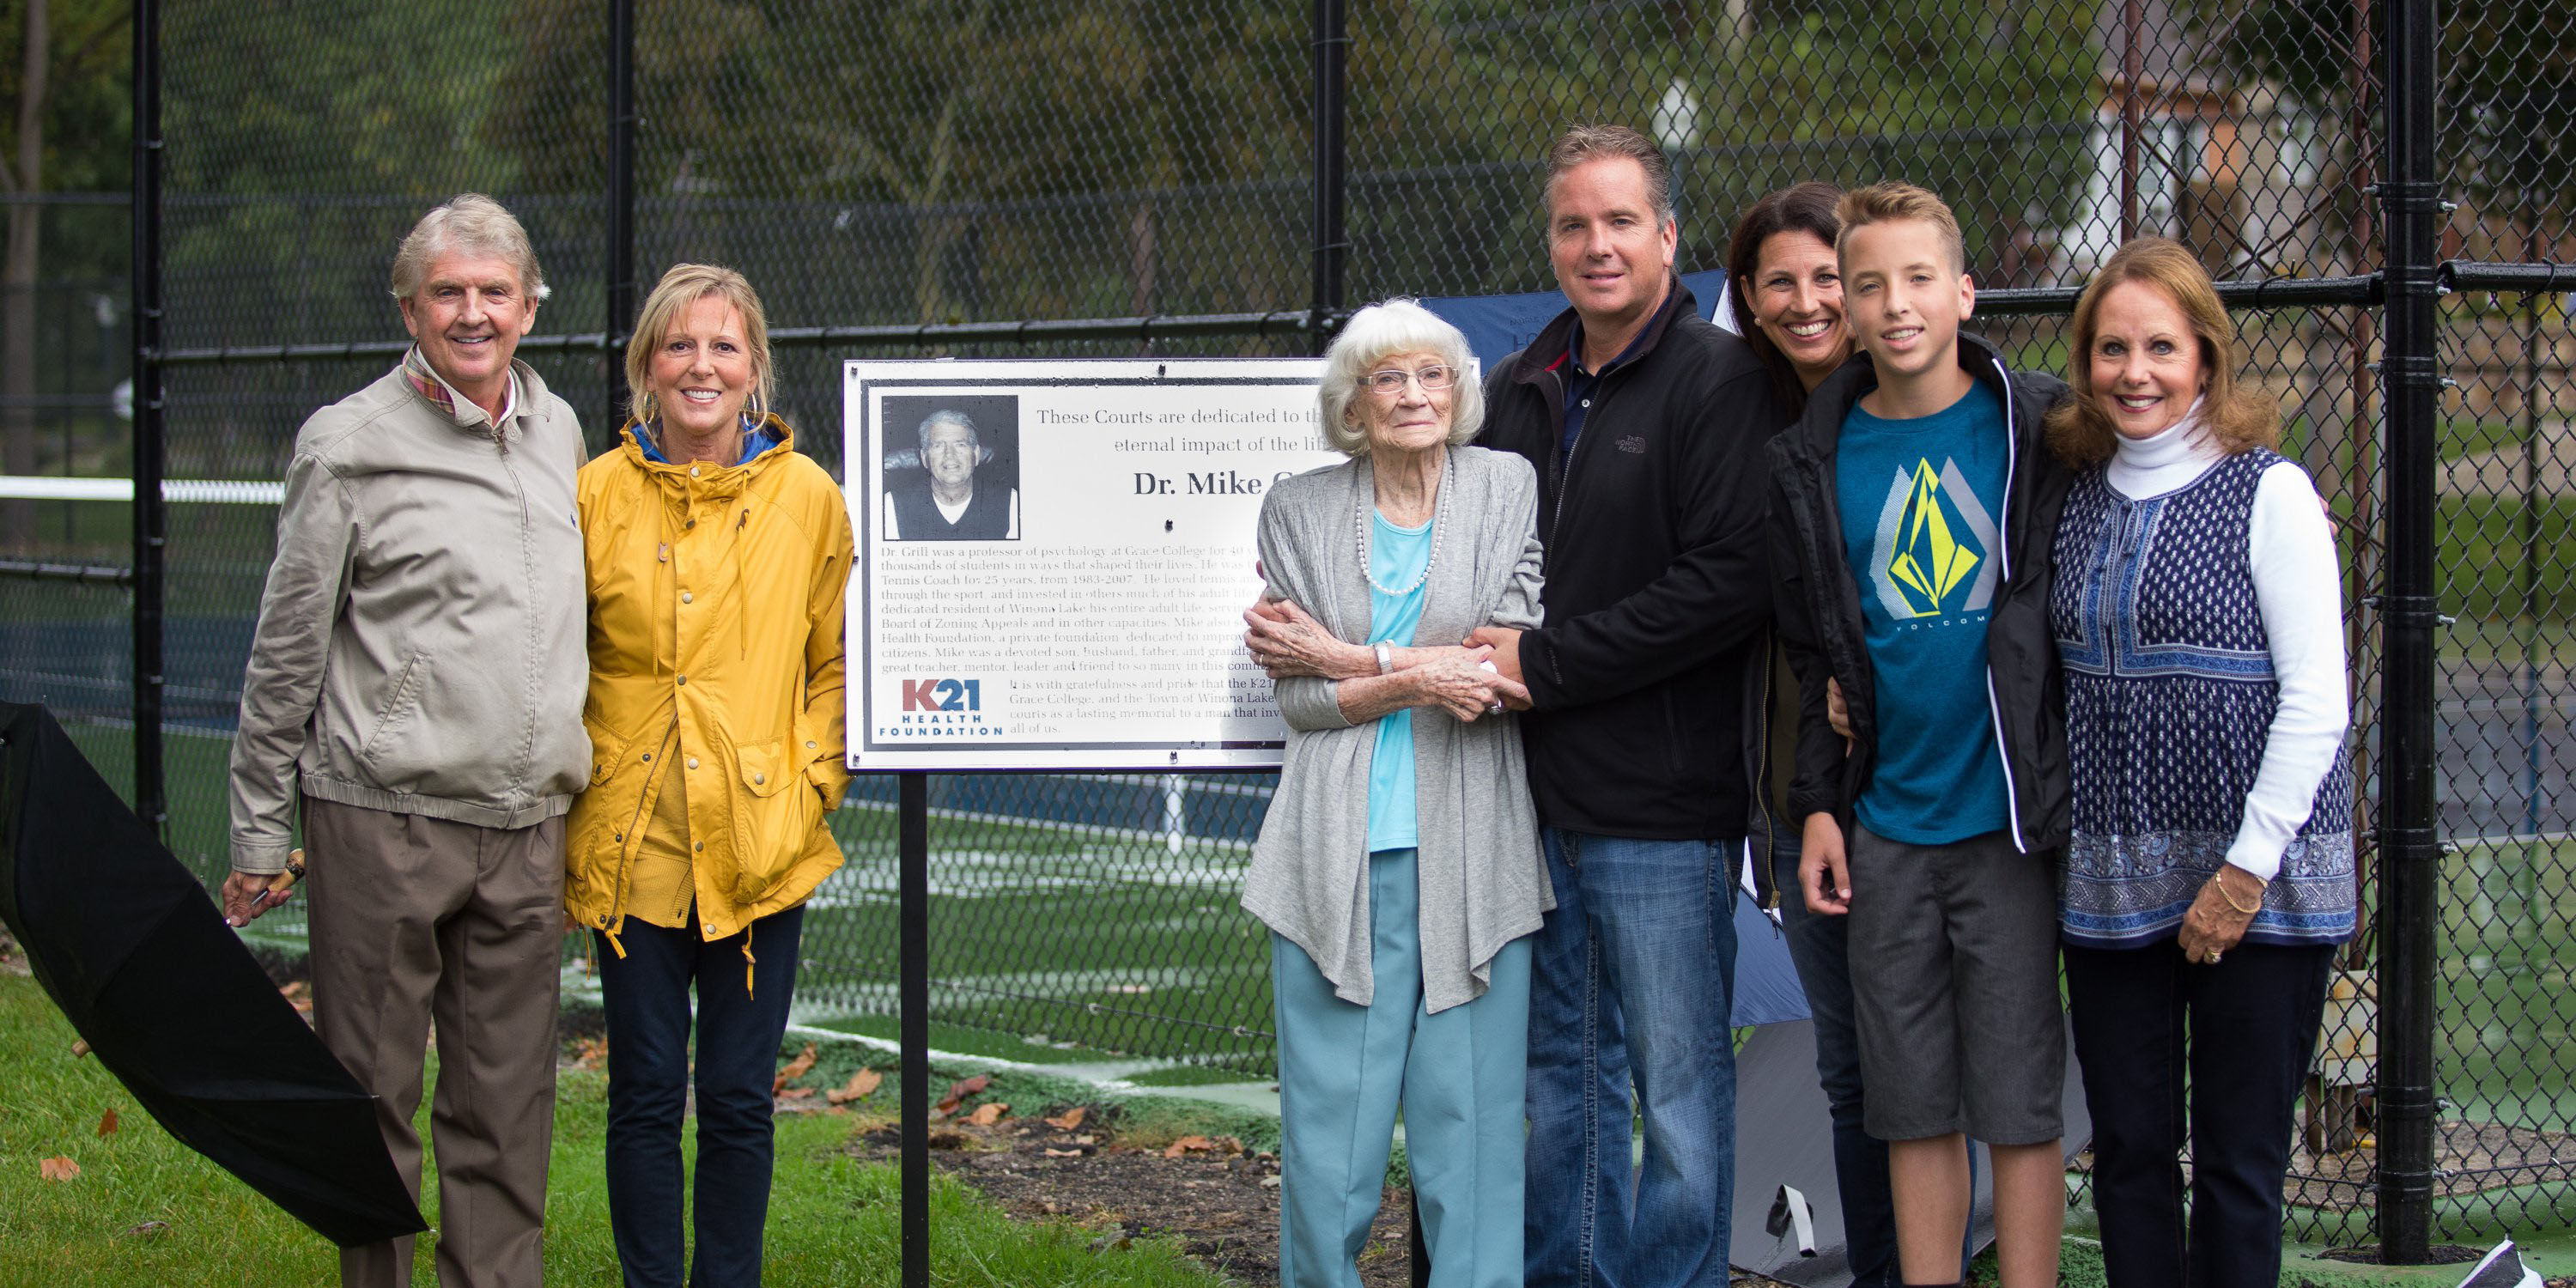 Steve, Susan, Kittie, Josh, Amy, Ethan and Becky Grill next to the Dr. Mike Grill Memorial Courts plaque.